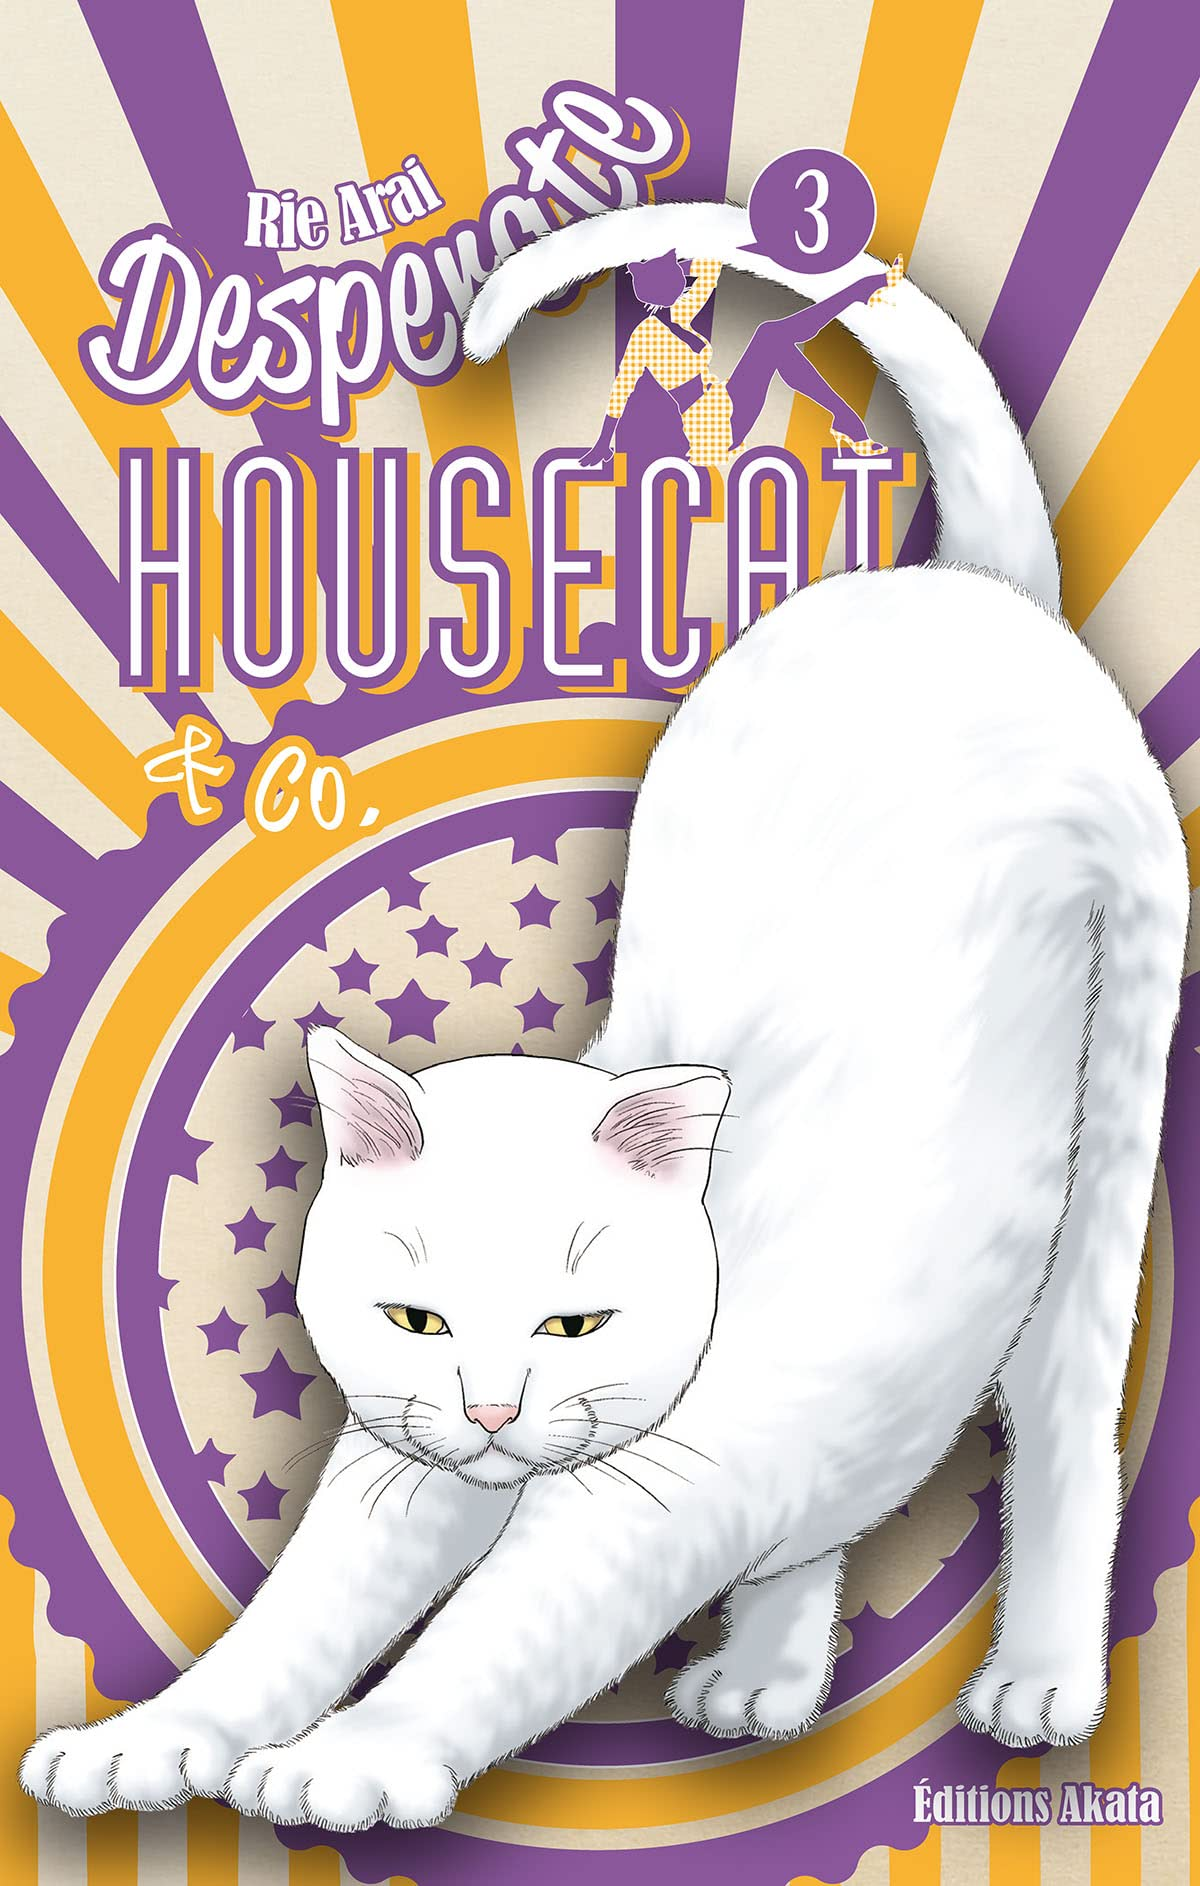 Desperate Housecat & Co. Vol. 3